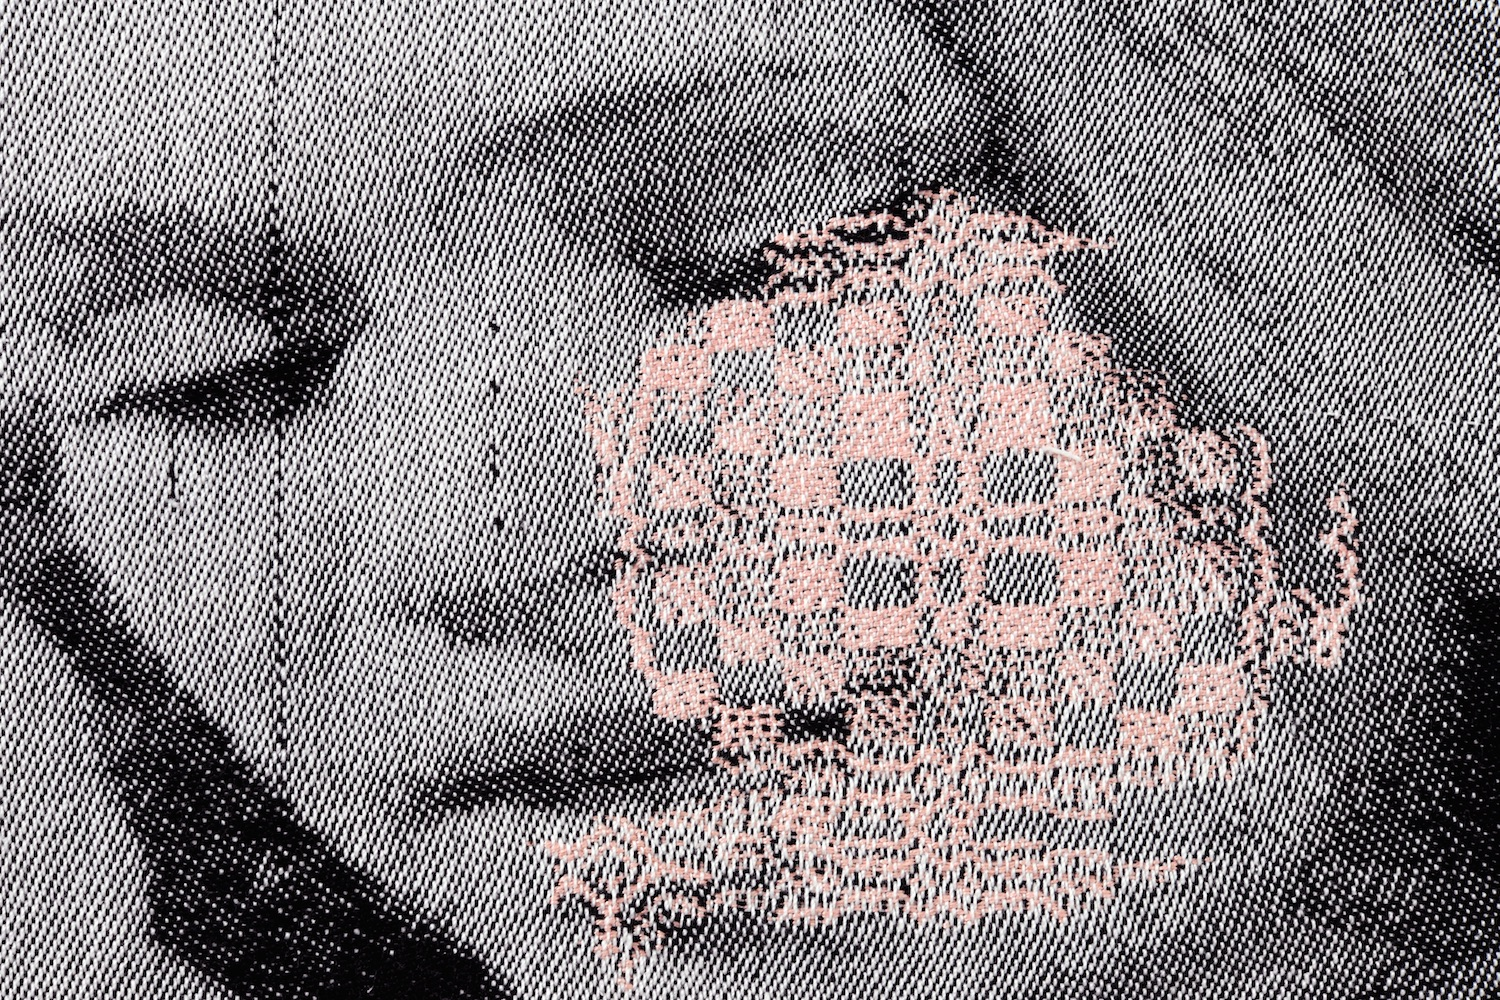 detail image of a woven portrait of a woman with a rosette pattern overlaid on her cheek